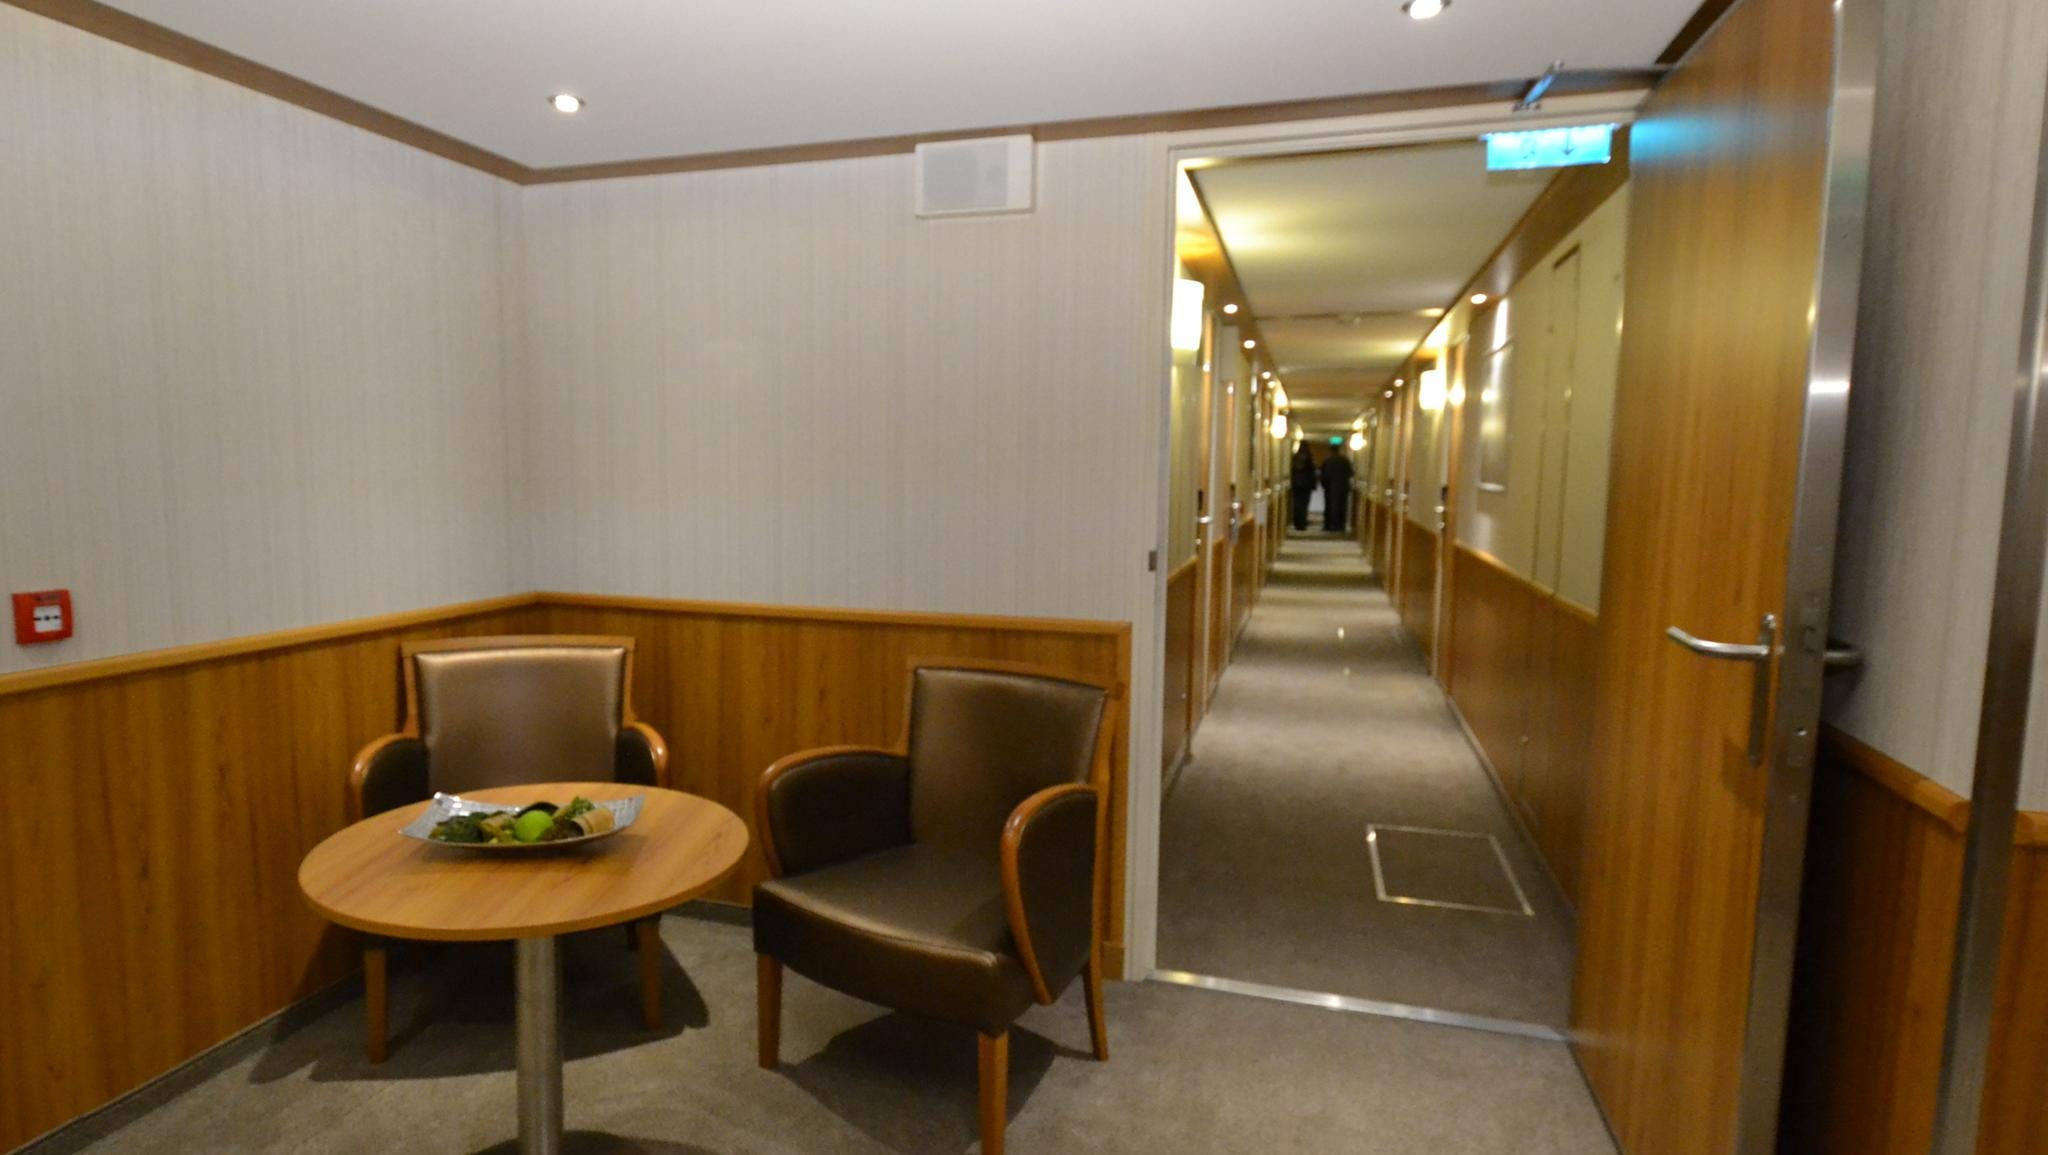 A sitting area in a hallway on the ship's lower level.